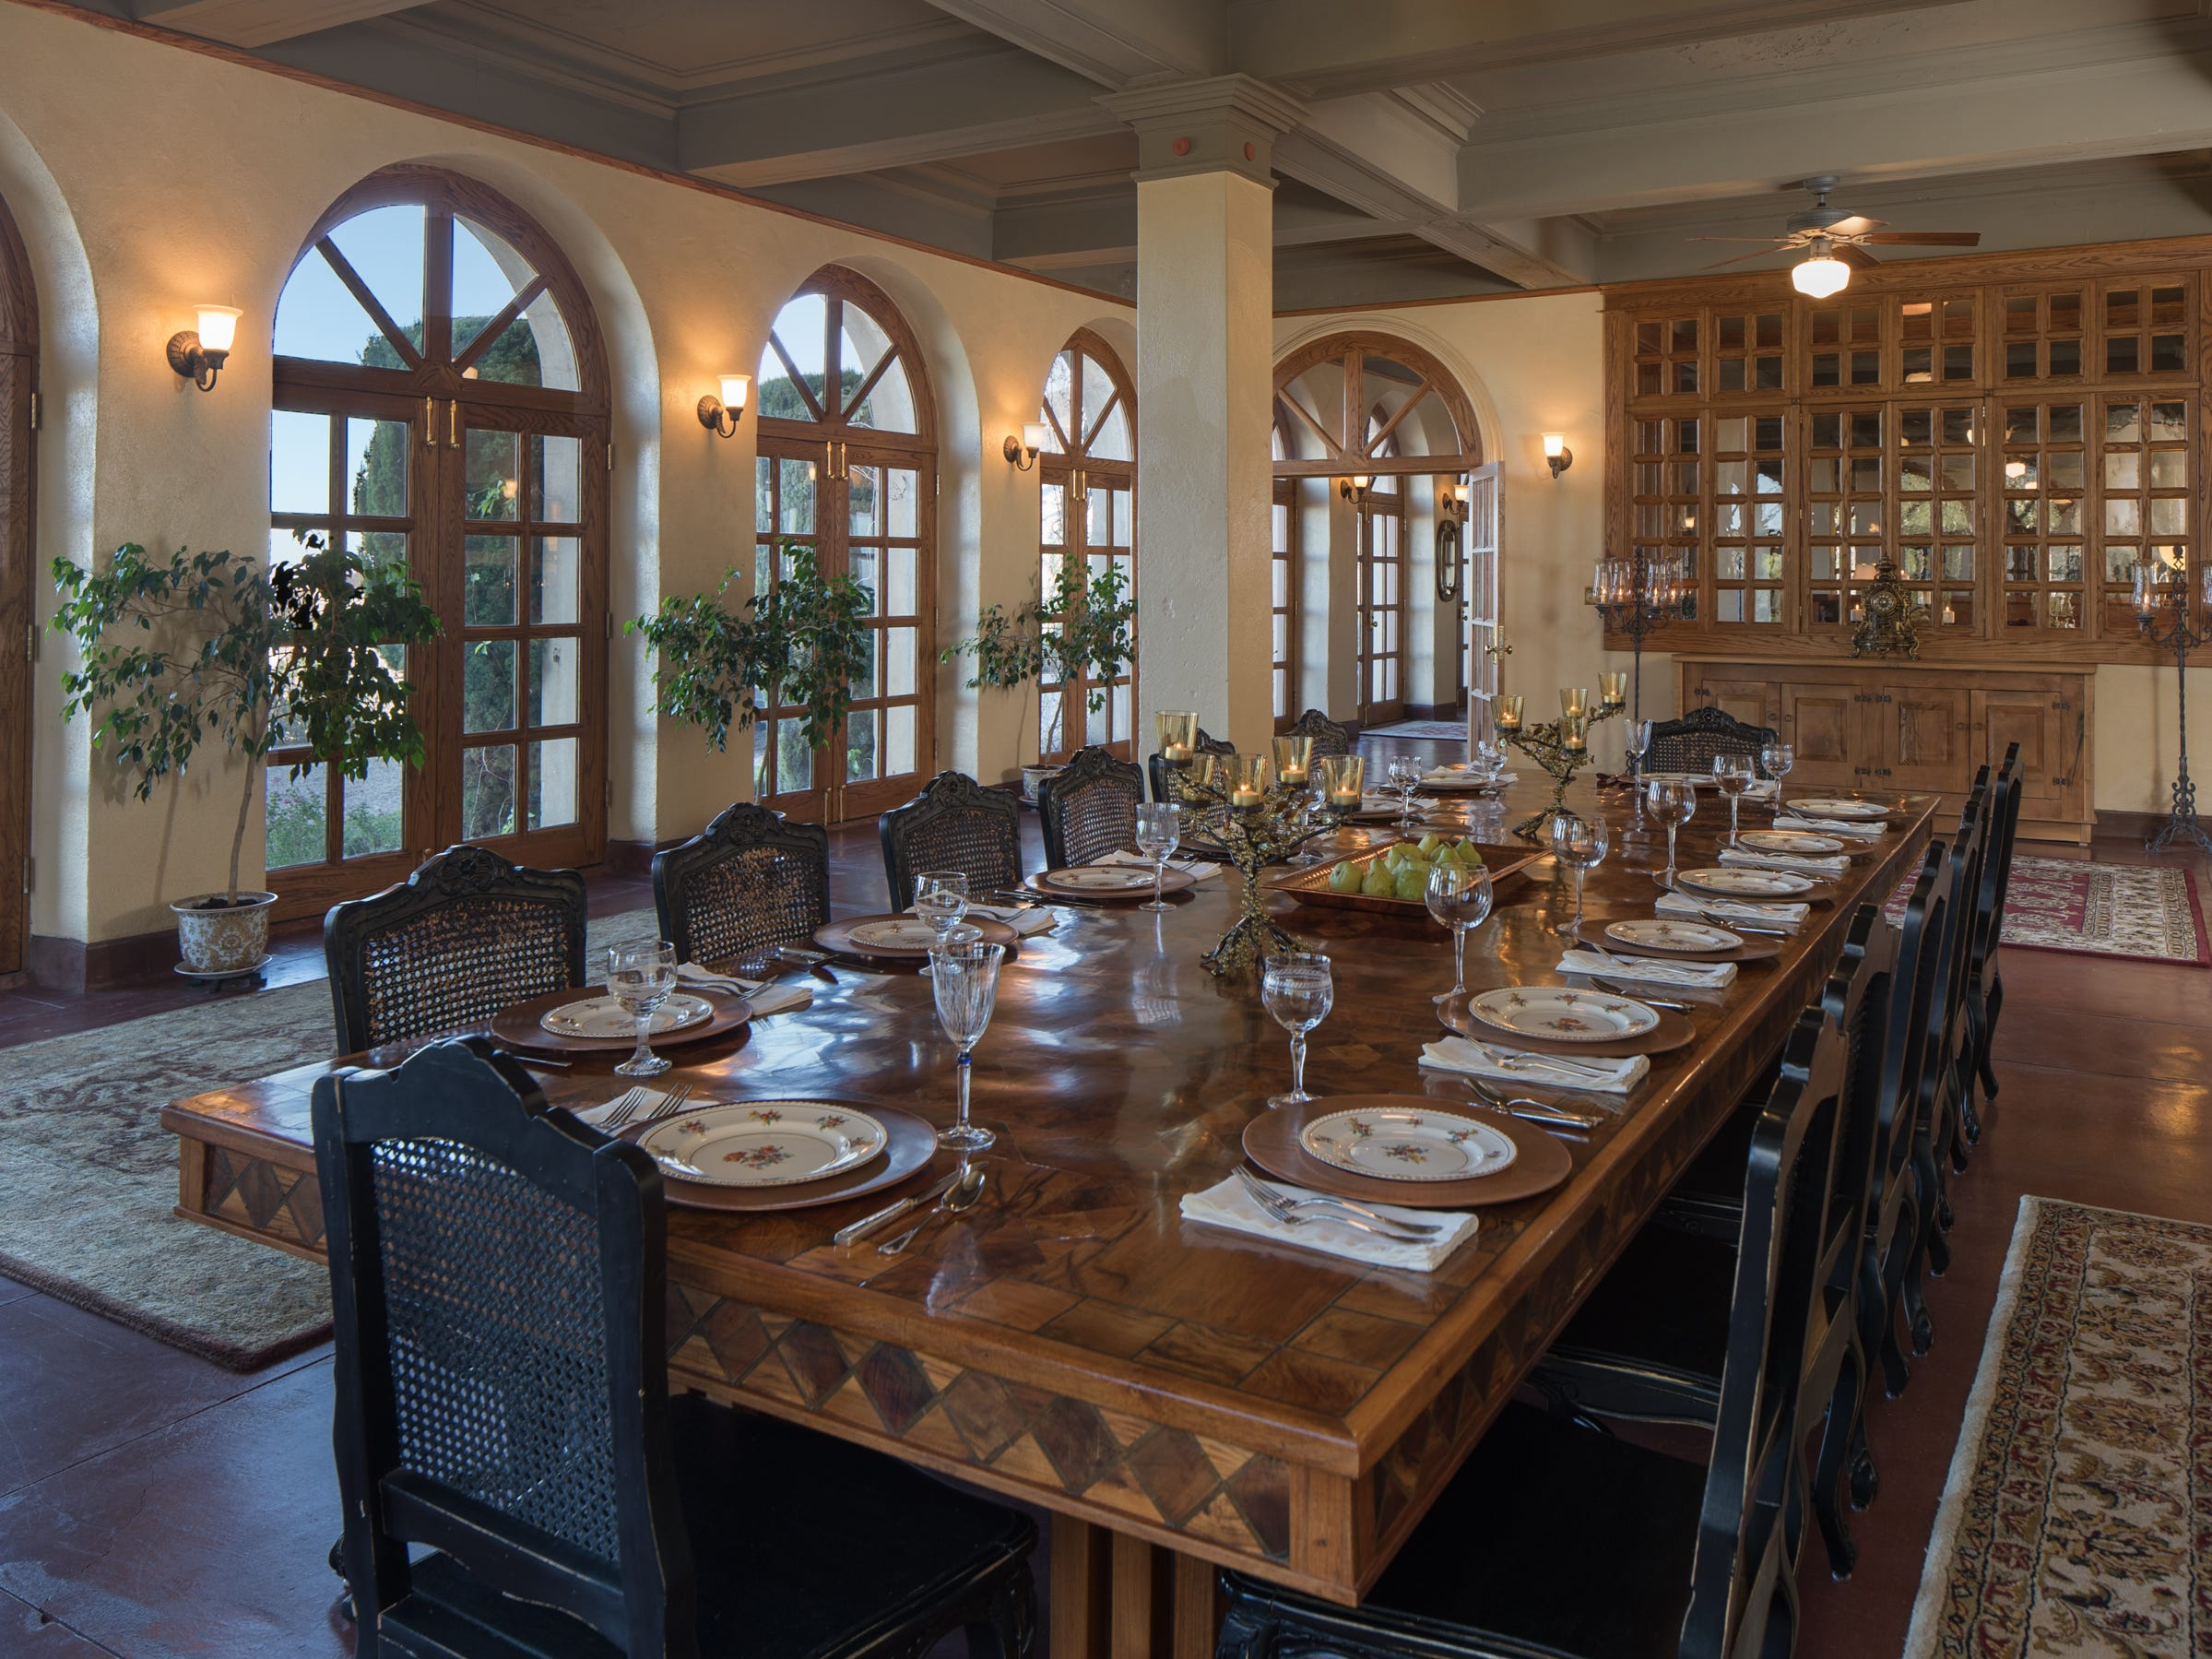 A dining room that can seat up to 135 is seen in the 100-year-old former Little Daisy Hotel in Jerome, which was later turned into a single-family home and is now on the market.